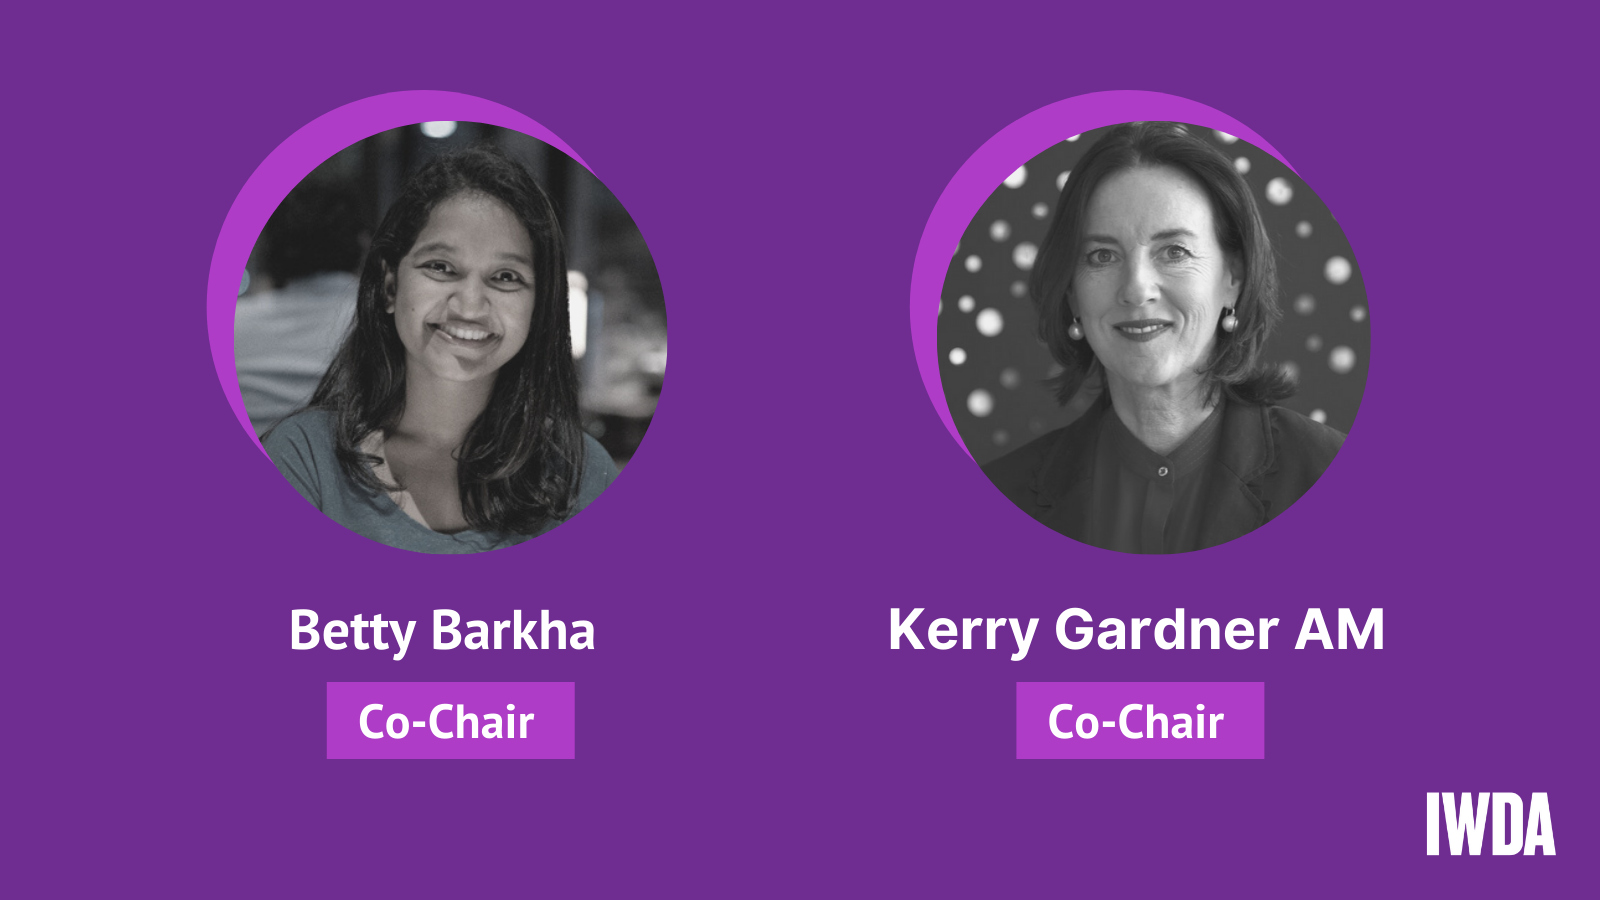 Board Co-Chairs Betty Barkha and Kerry Gardner AM